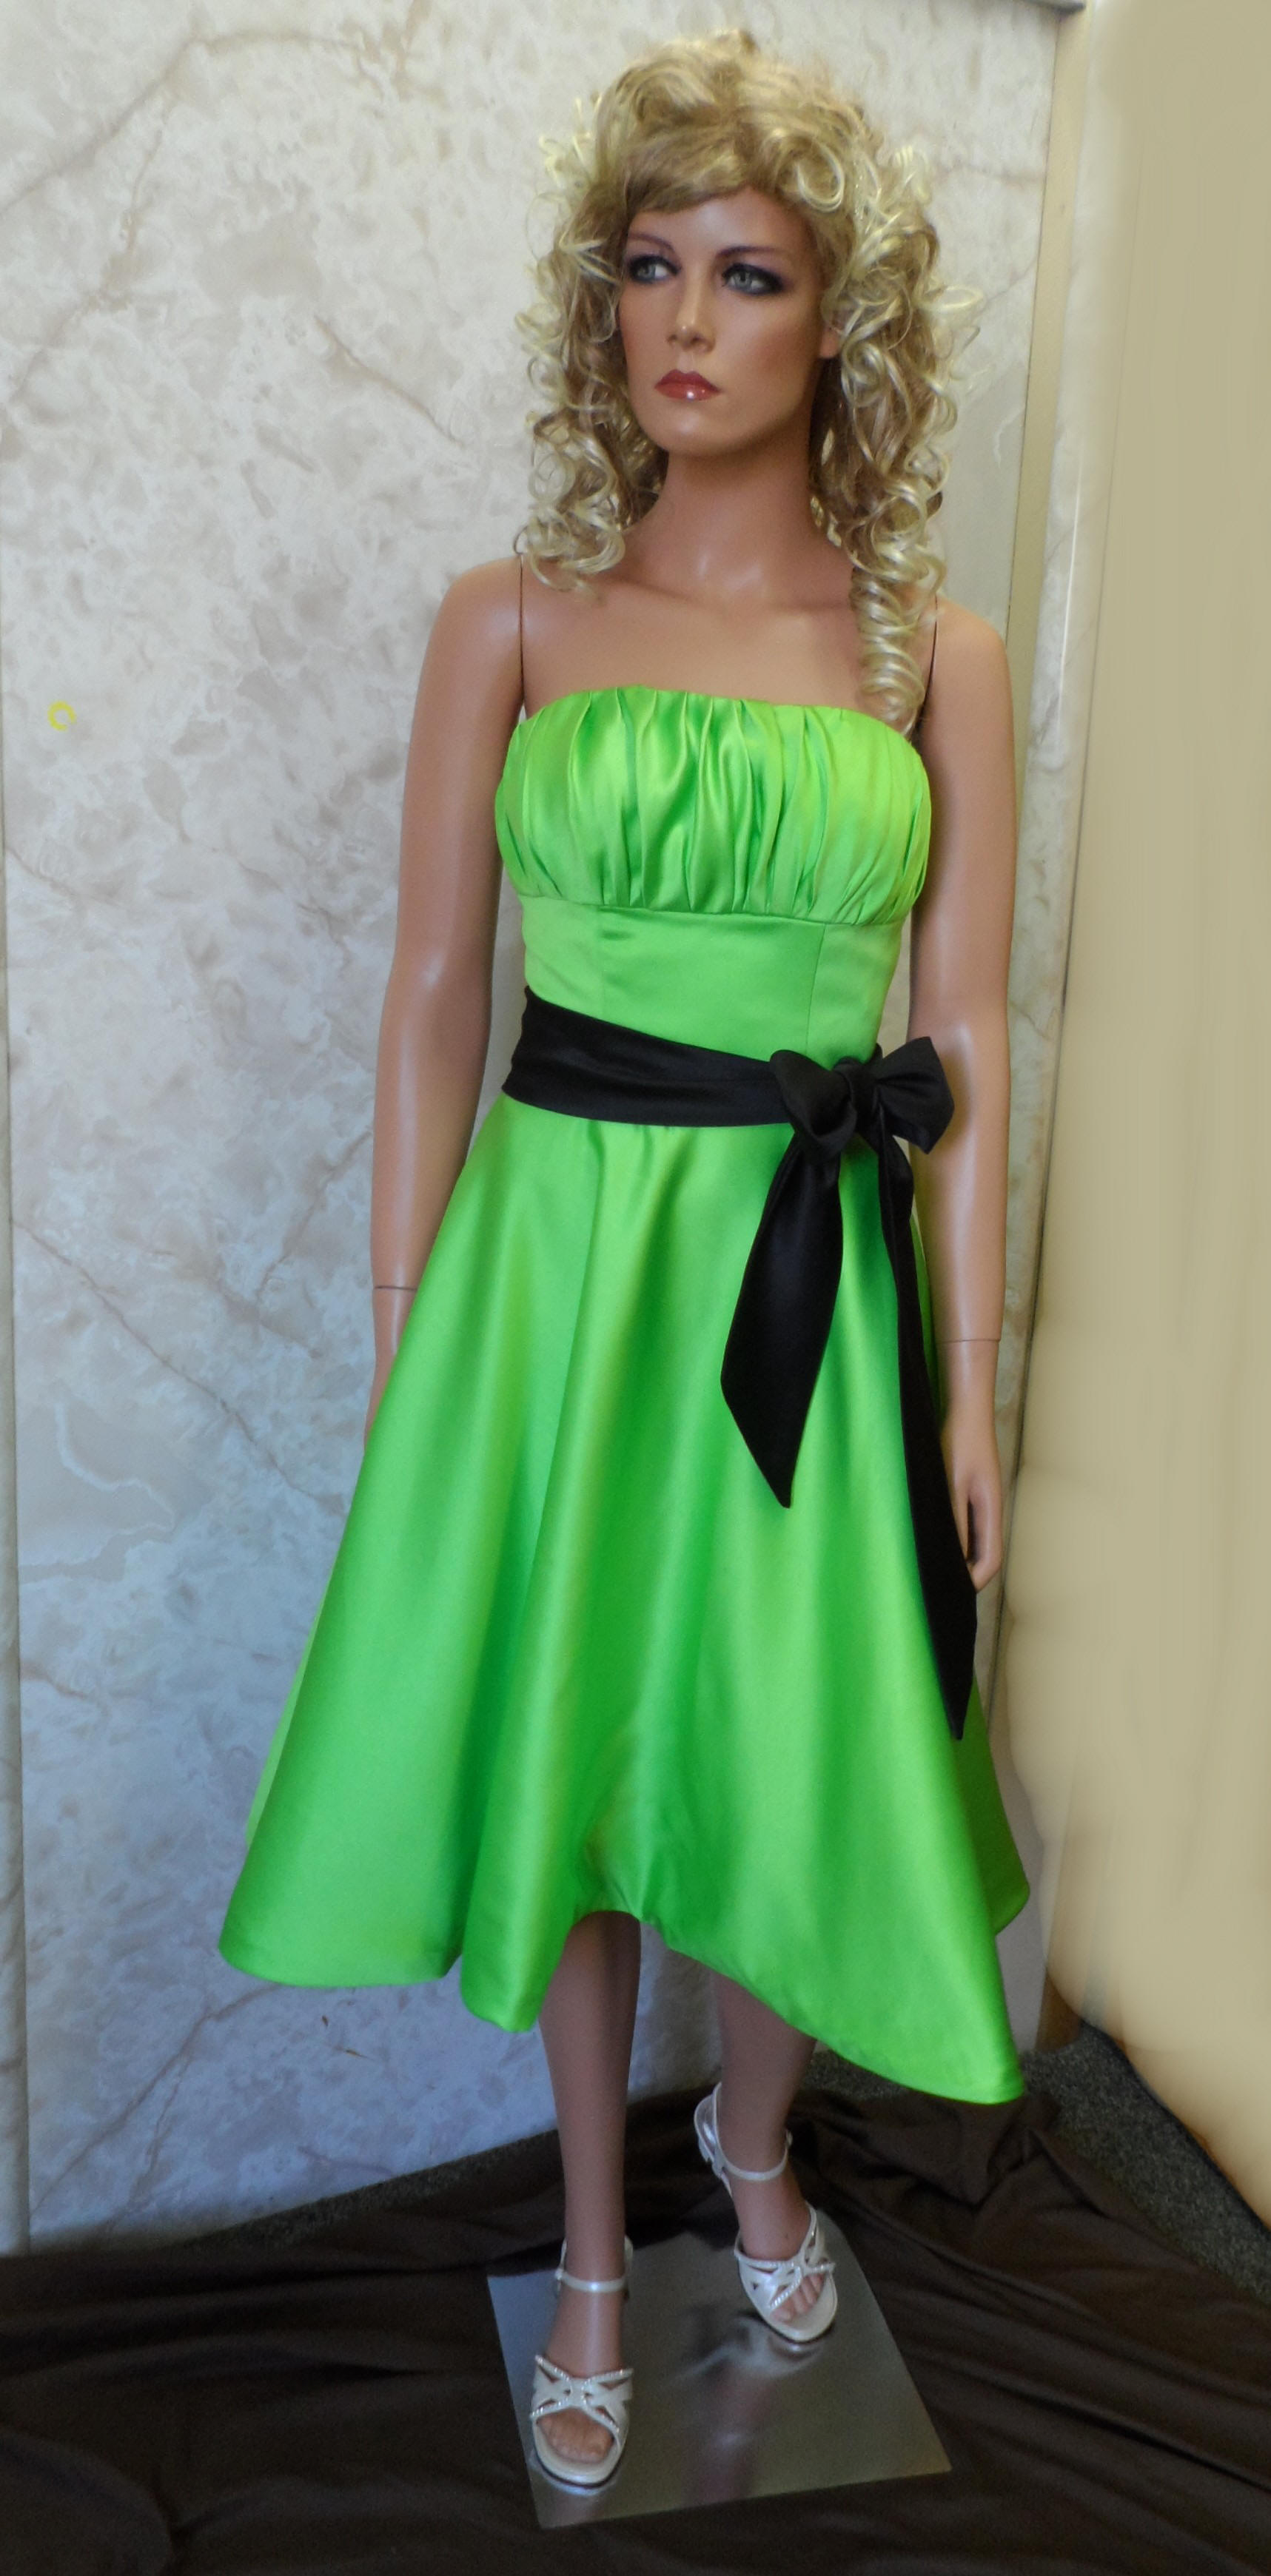 Adam Sandy 39 S Wedding Ideas On Pinterest Lime Green